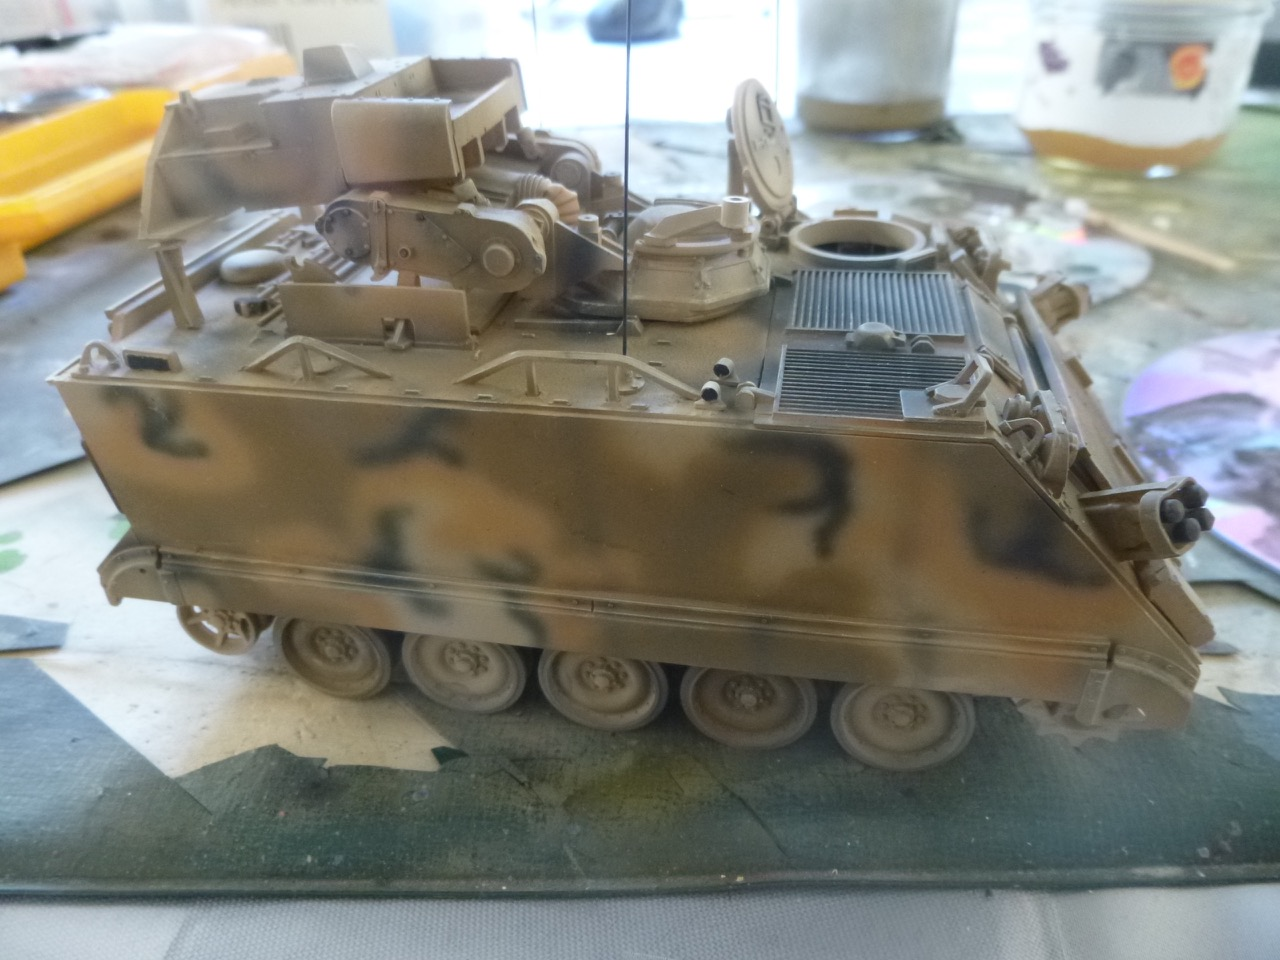 M113 / M109 Tow, une conversion en résine Verlinden au 1/35, base Tamiya 170122124405993028